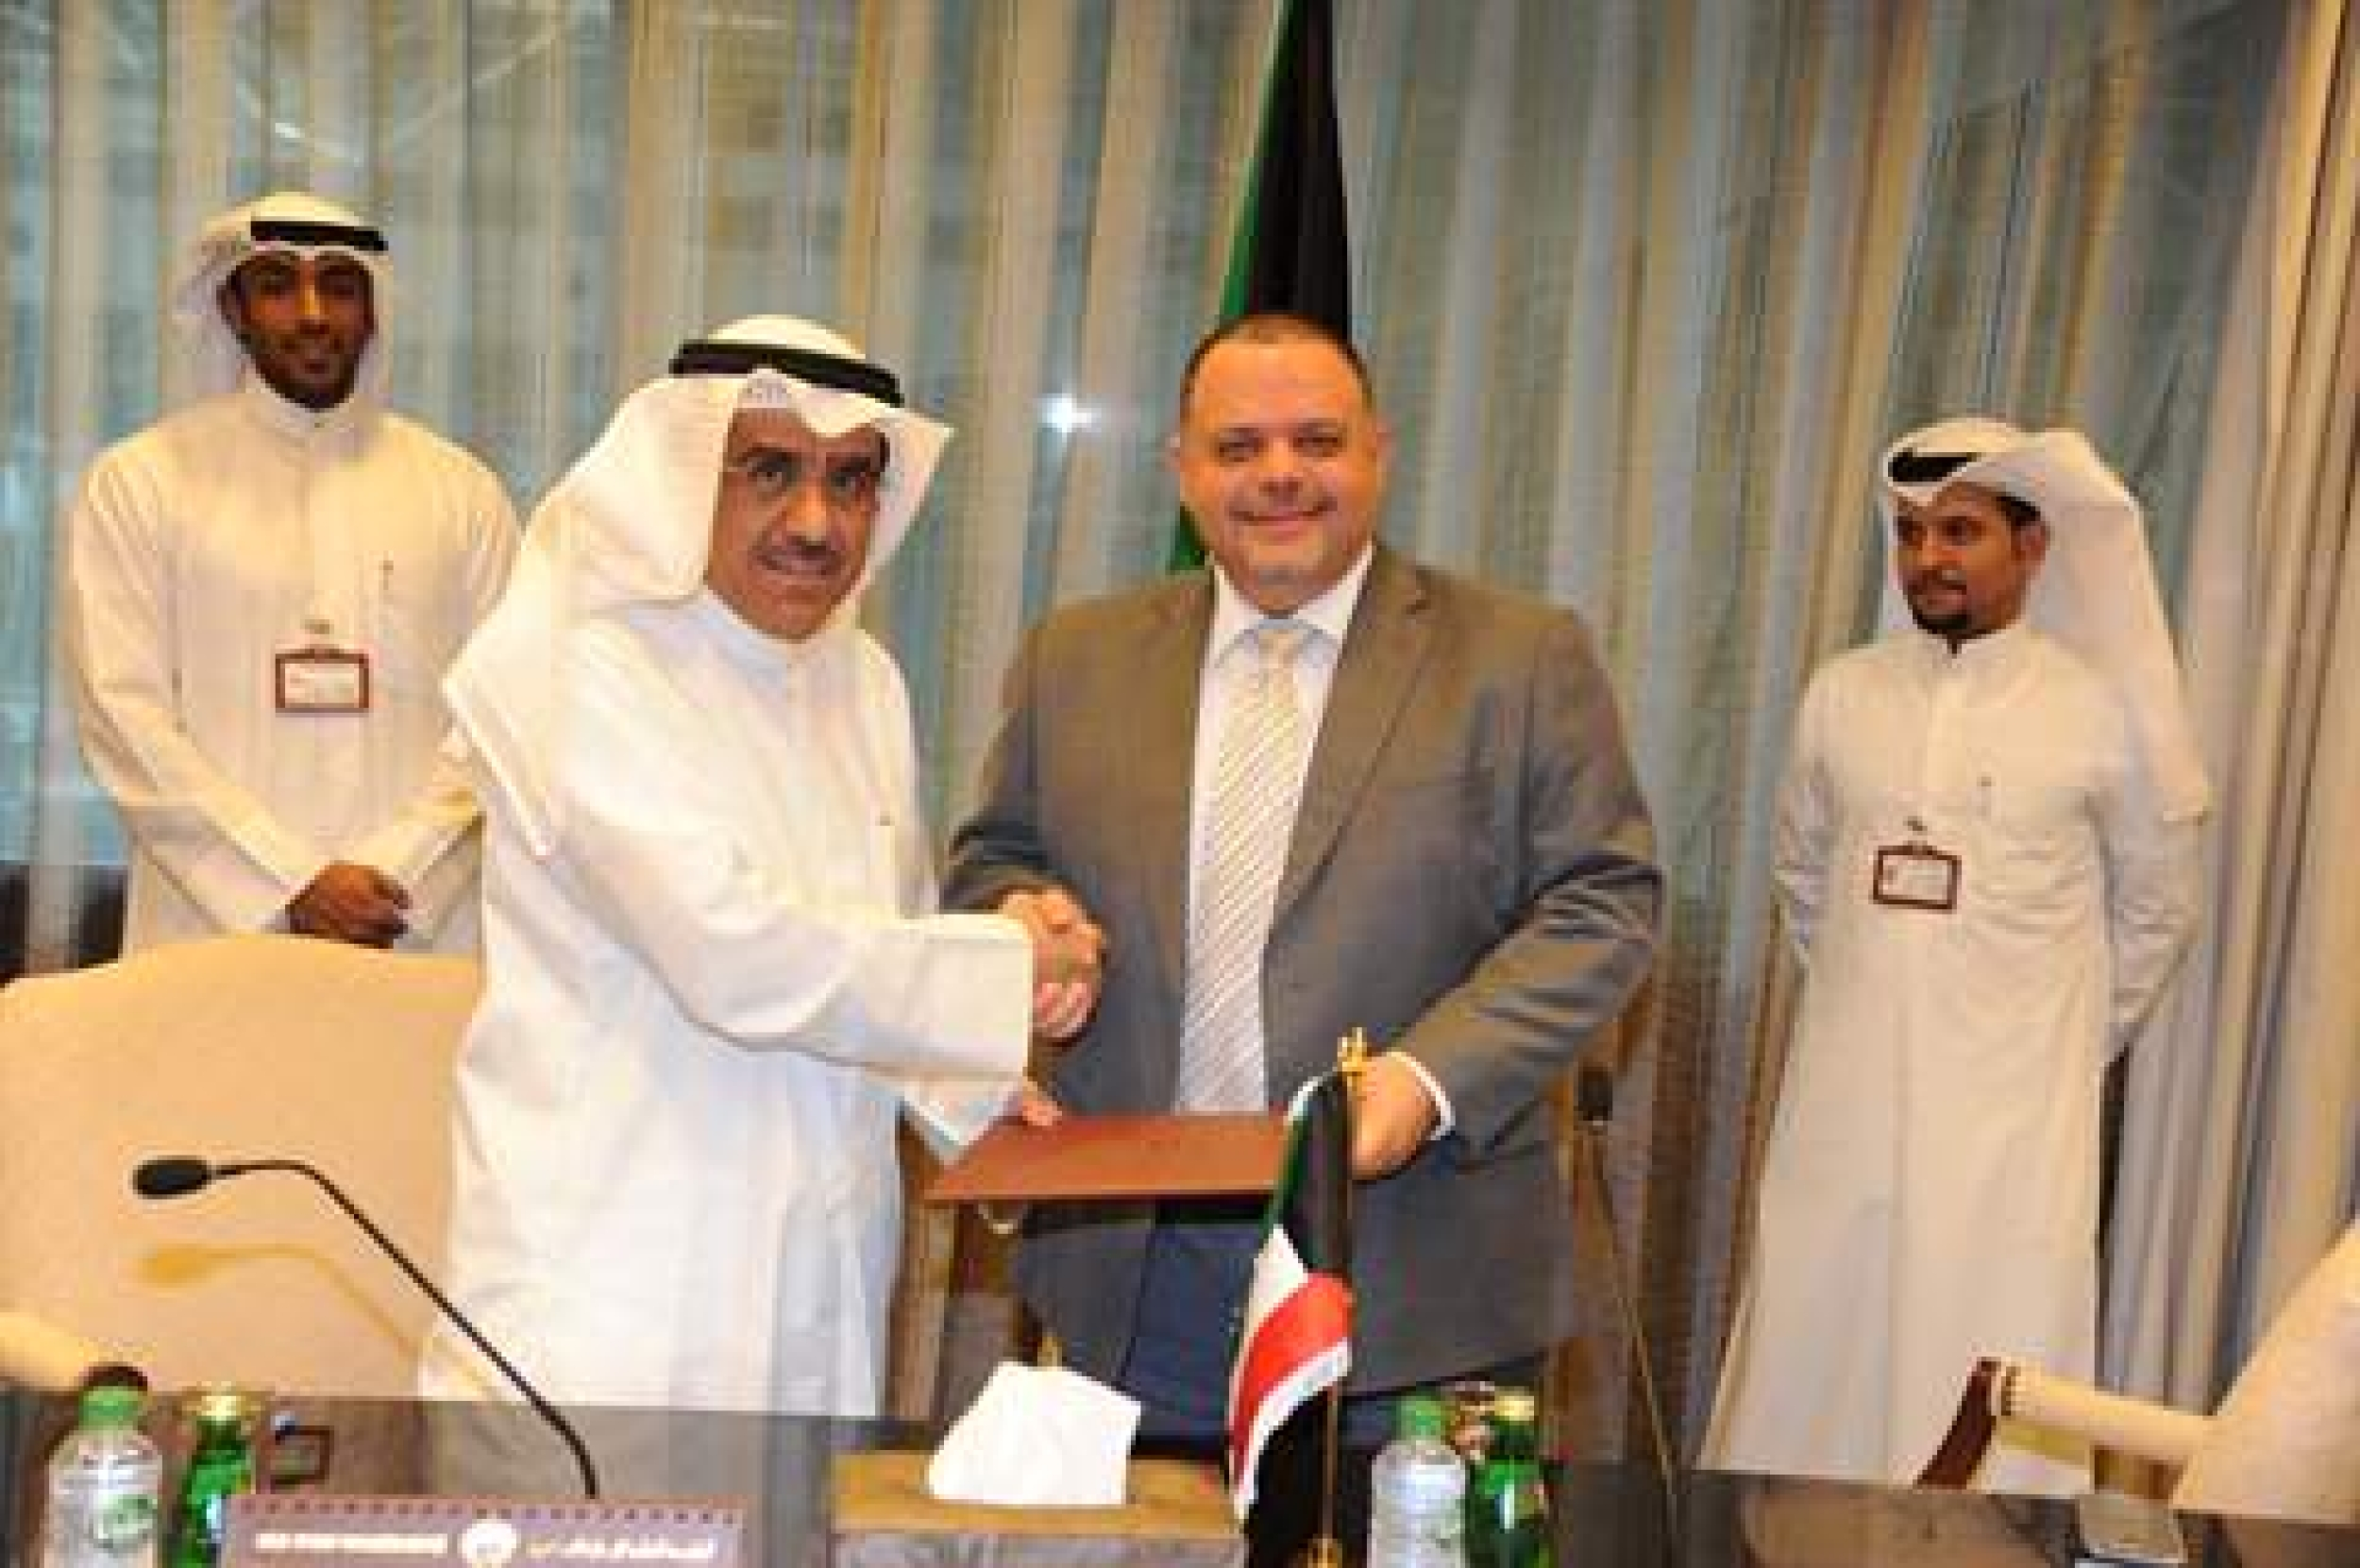 PAHW signed an agreement with NTEC to build and operate a Low Energy & Sustainable Kuwaiti house in Kuwait